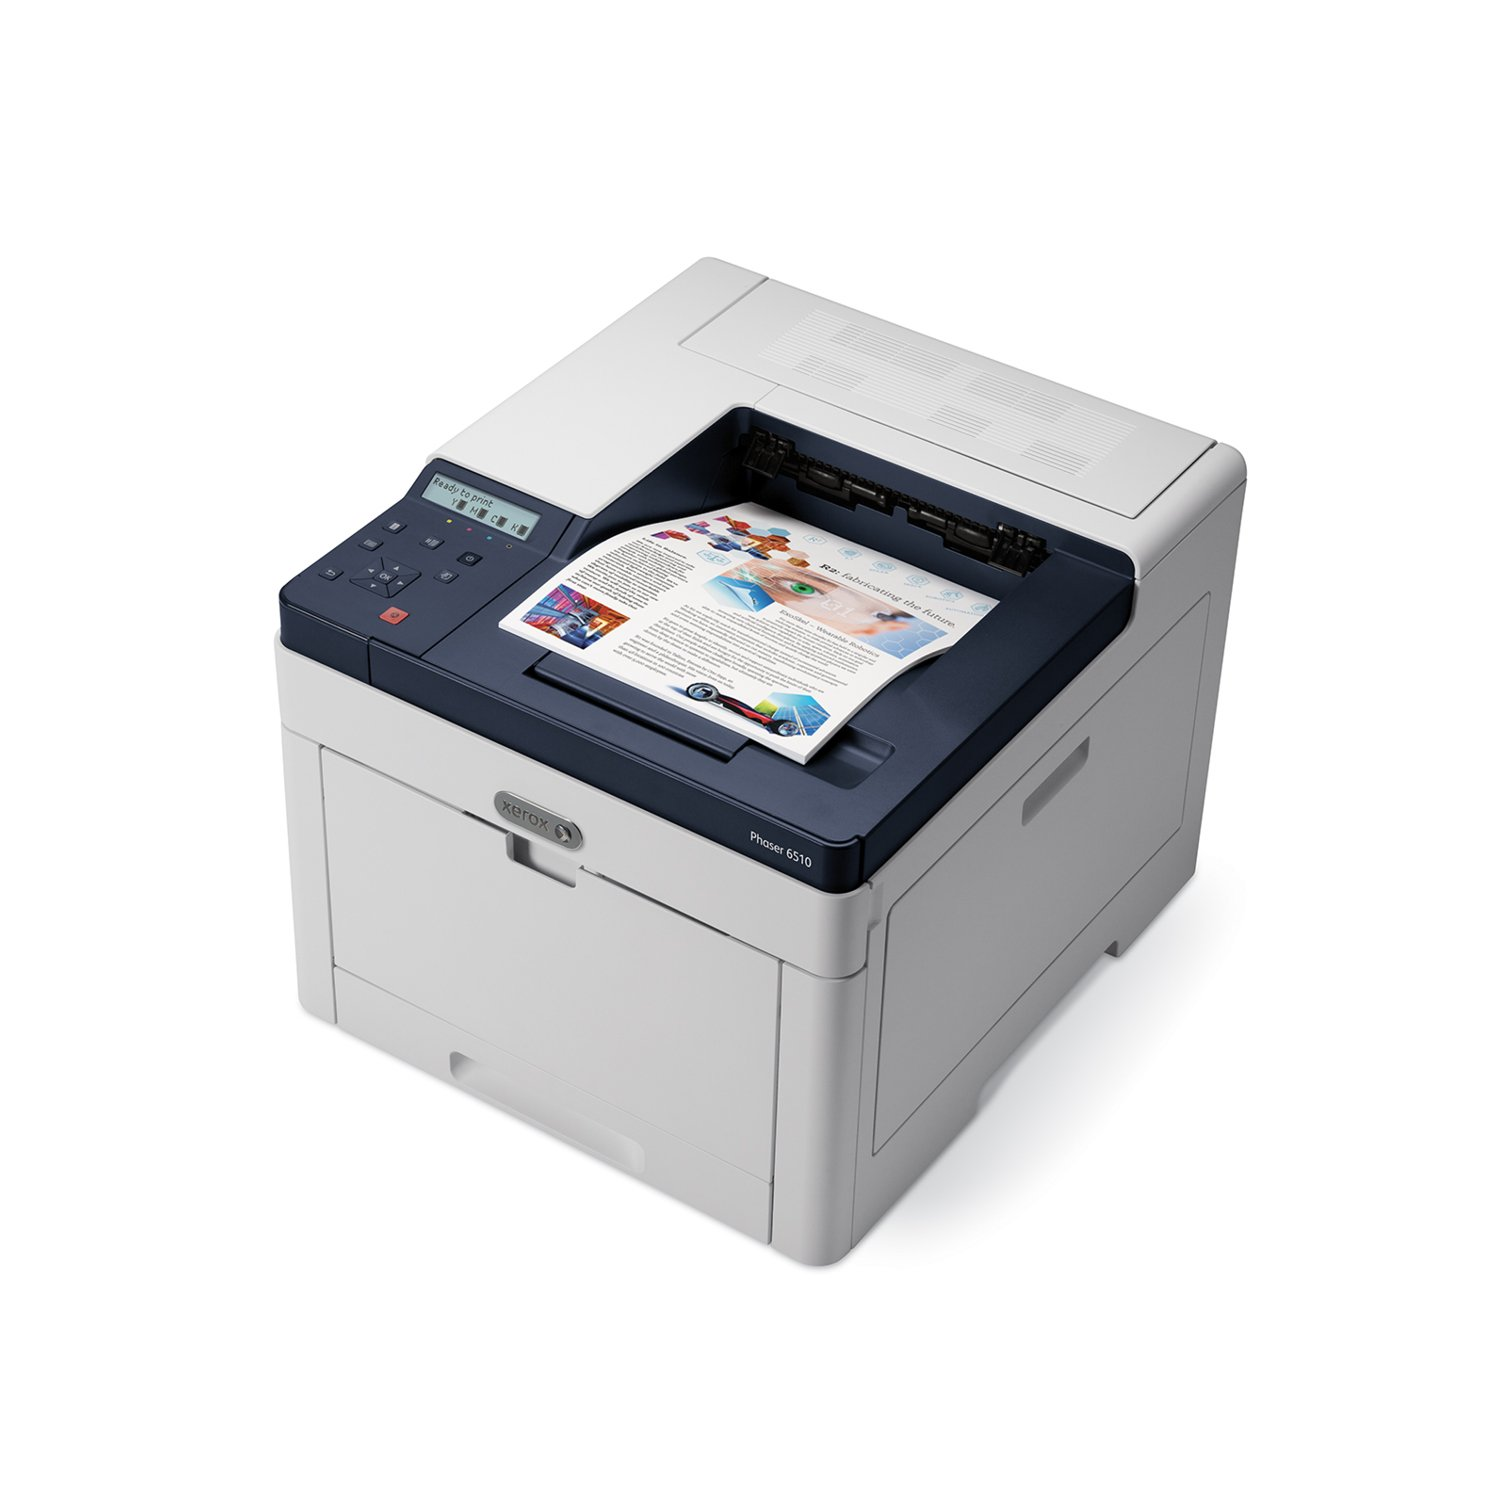 Xerox Phaser 6510/DN Color Printer, Amazon Dash Replenishment Enabled by Xerox